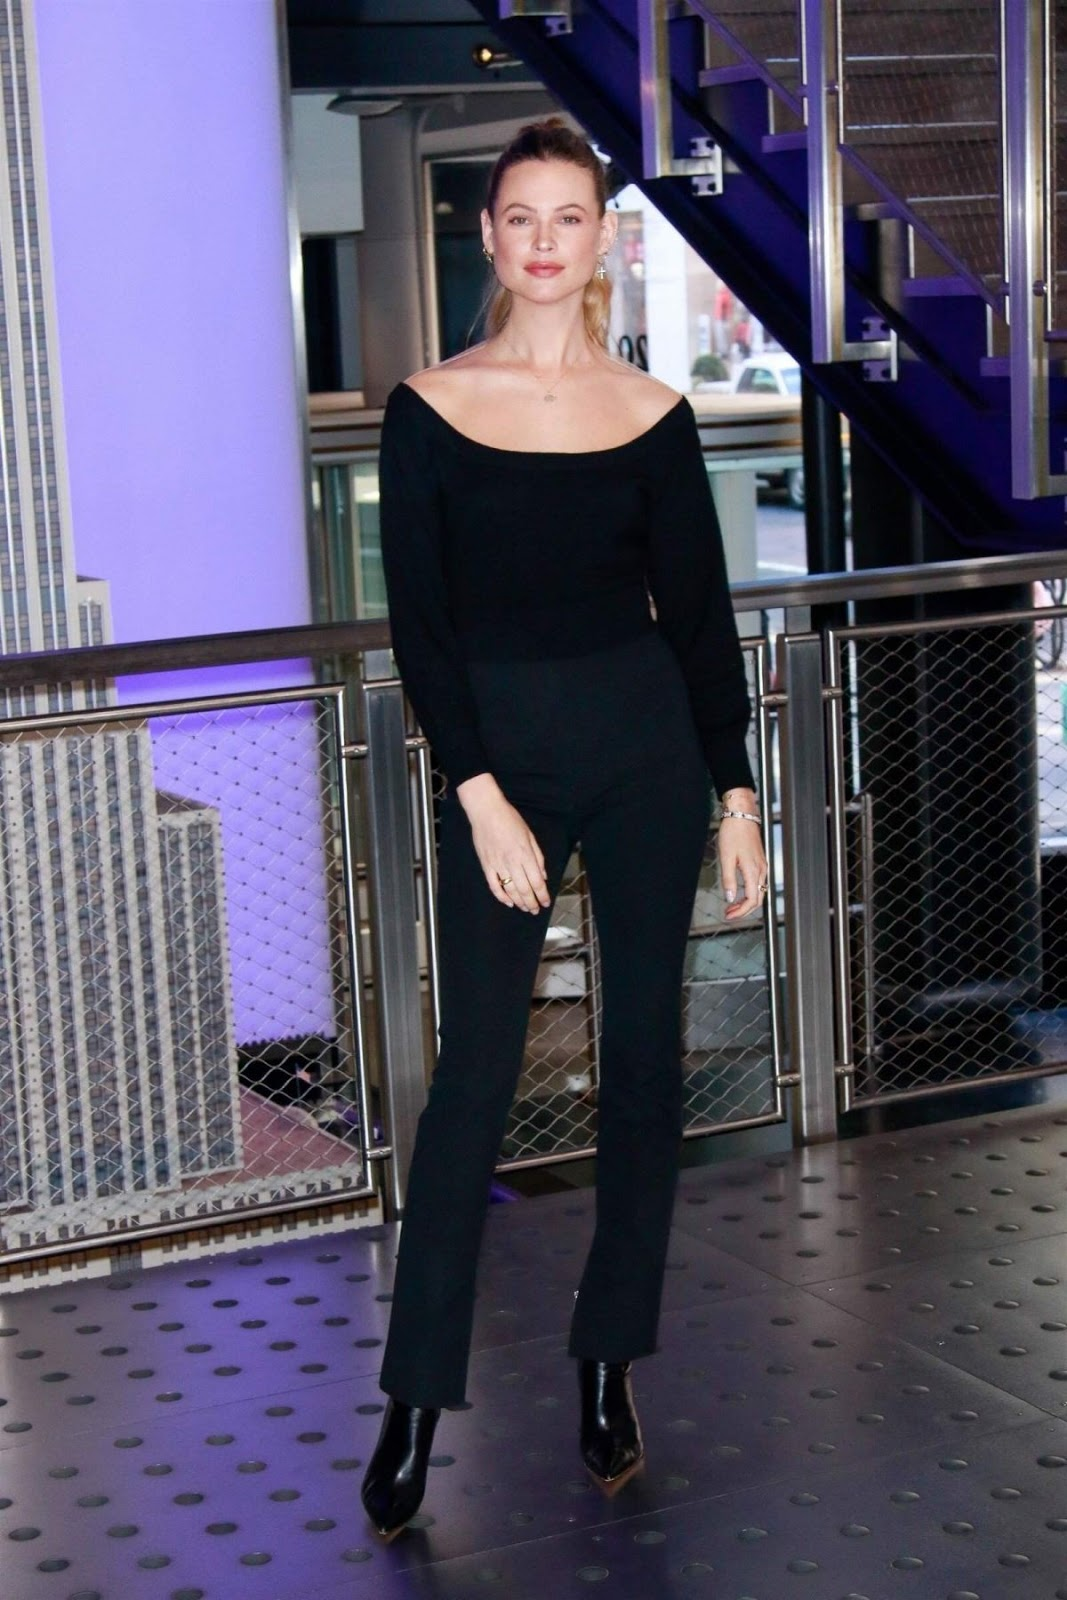 Behati Prinsloo looks classy in an all-black ensemble as she lights up the Empire State Building in honor of World Wildlife Day